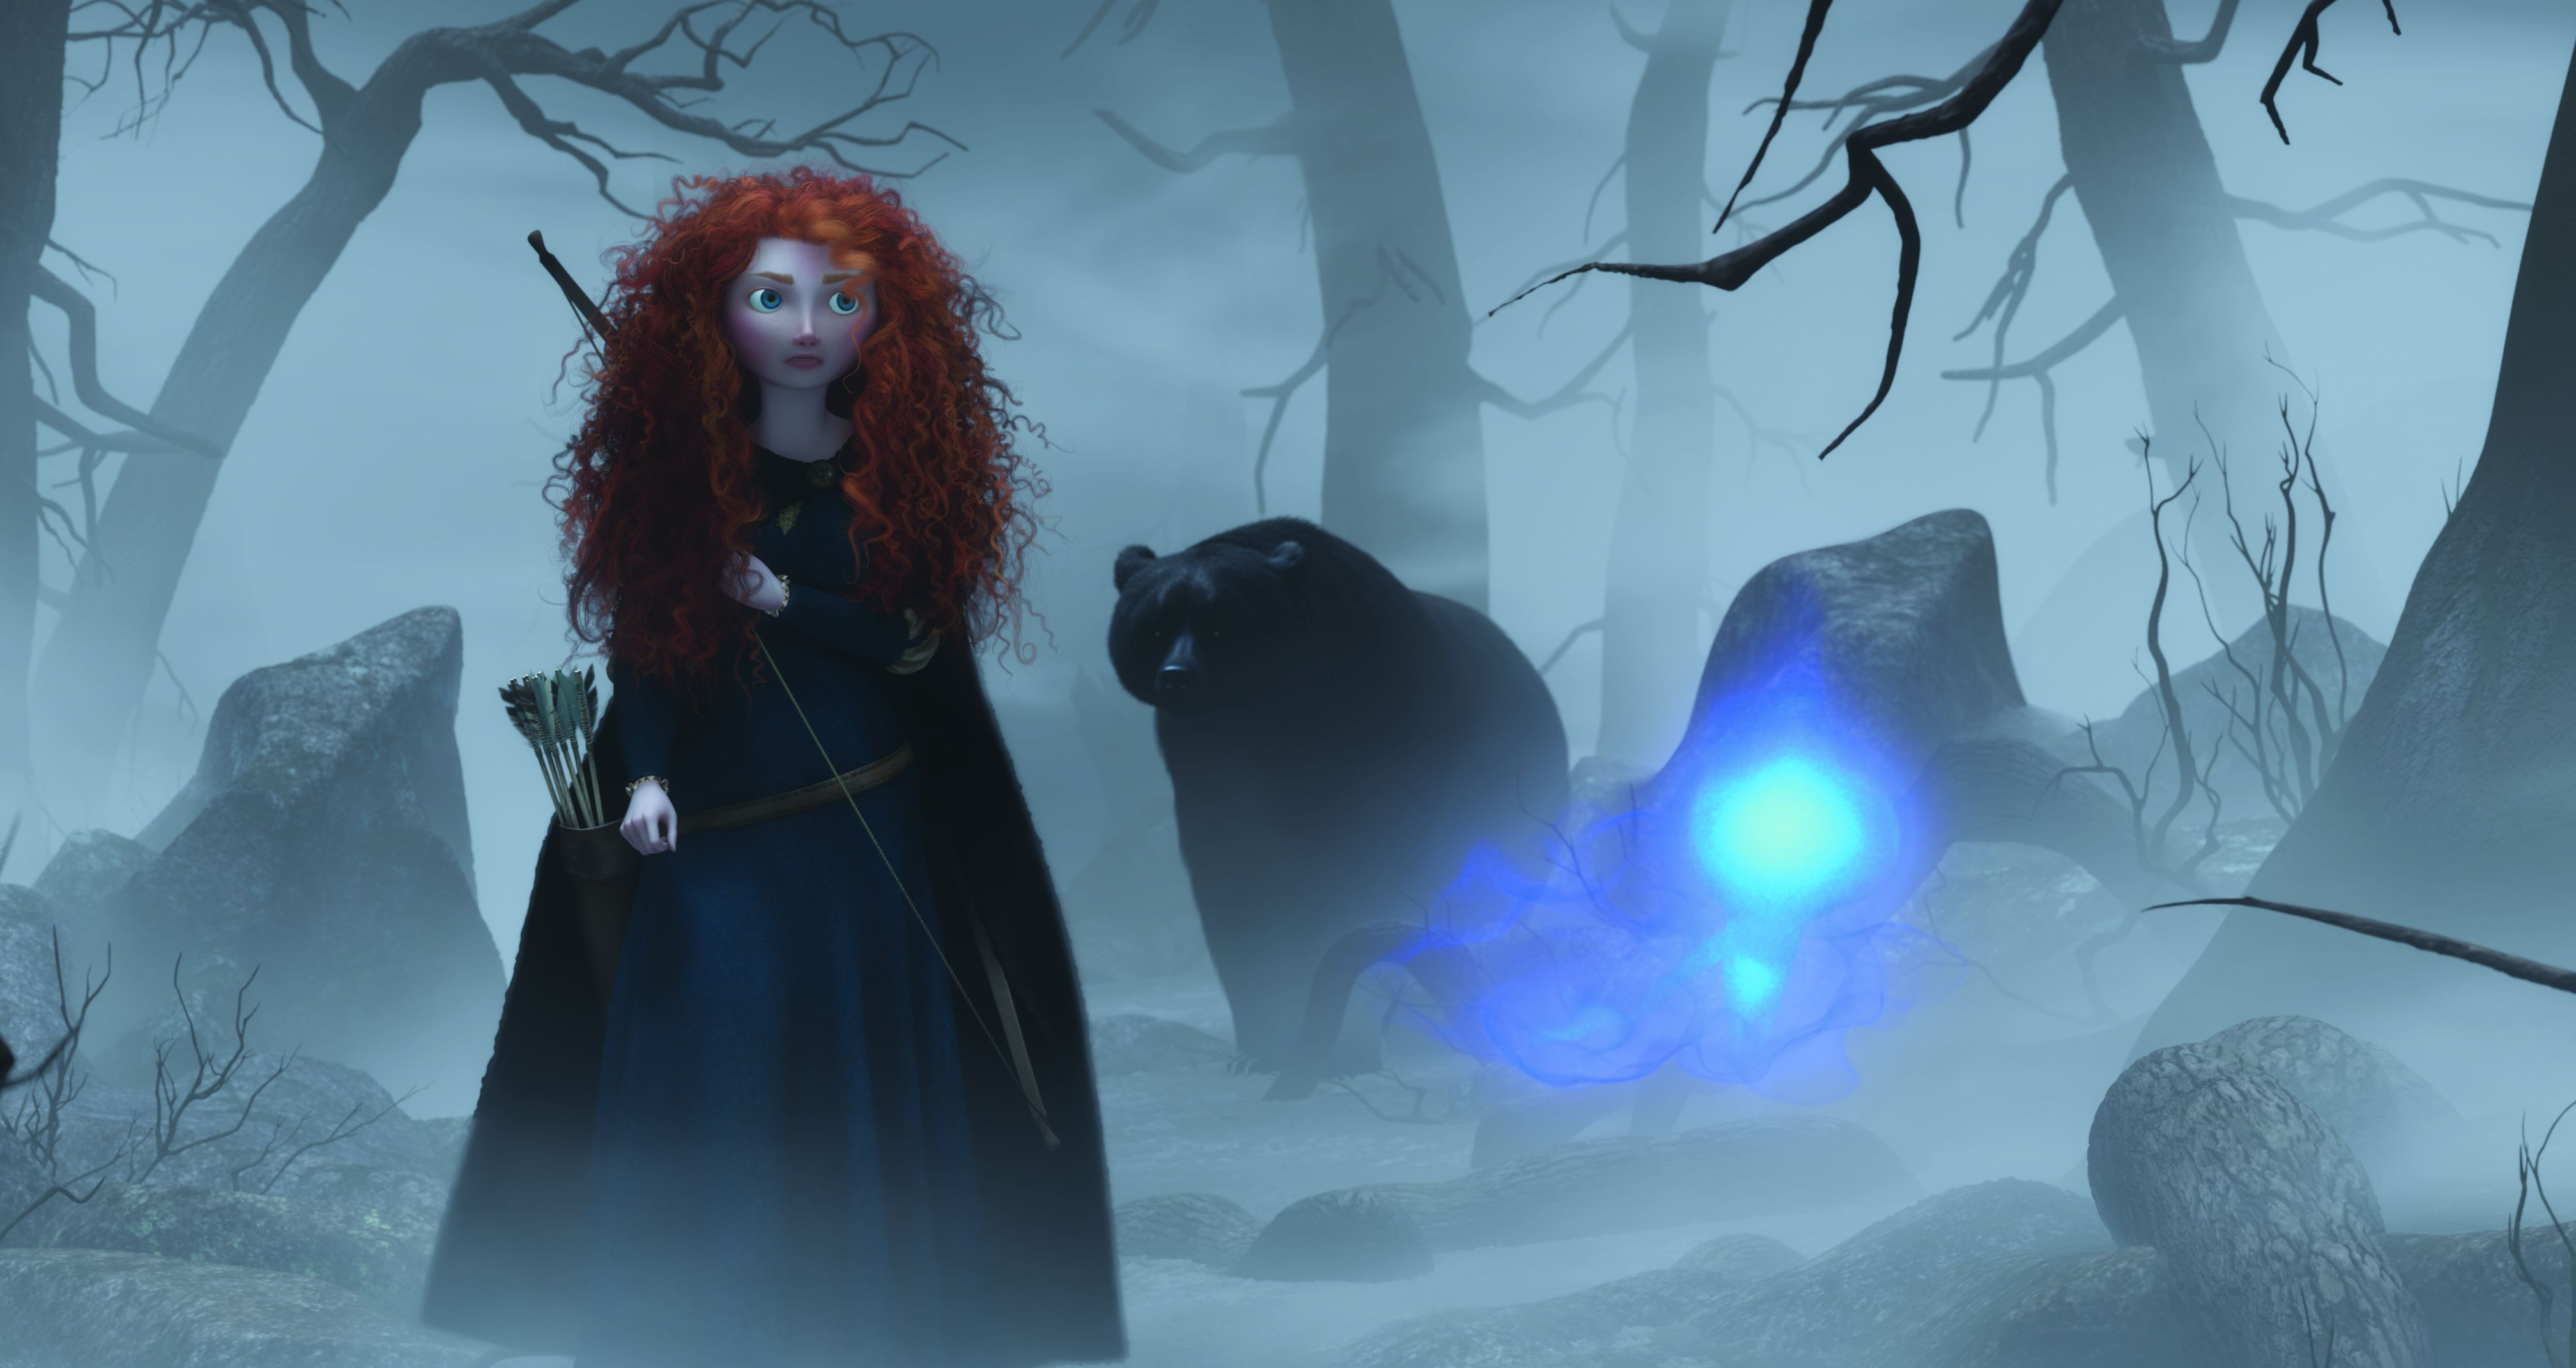 Merida, the bear and a wisp in the forrest